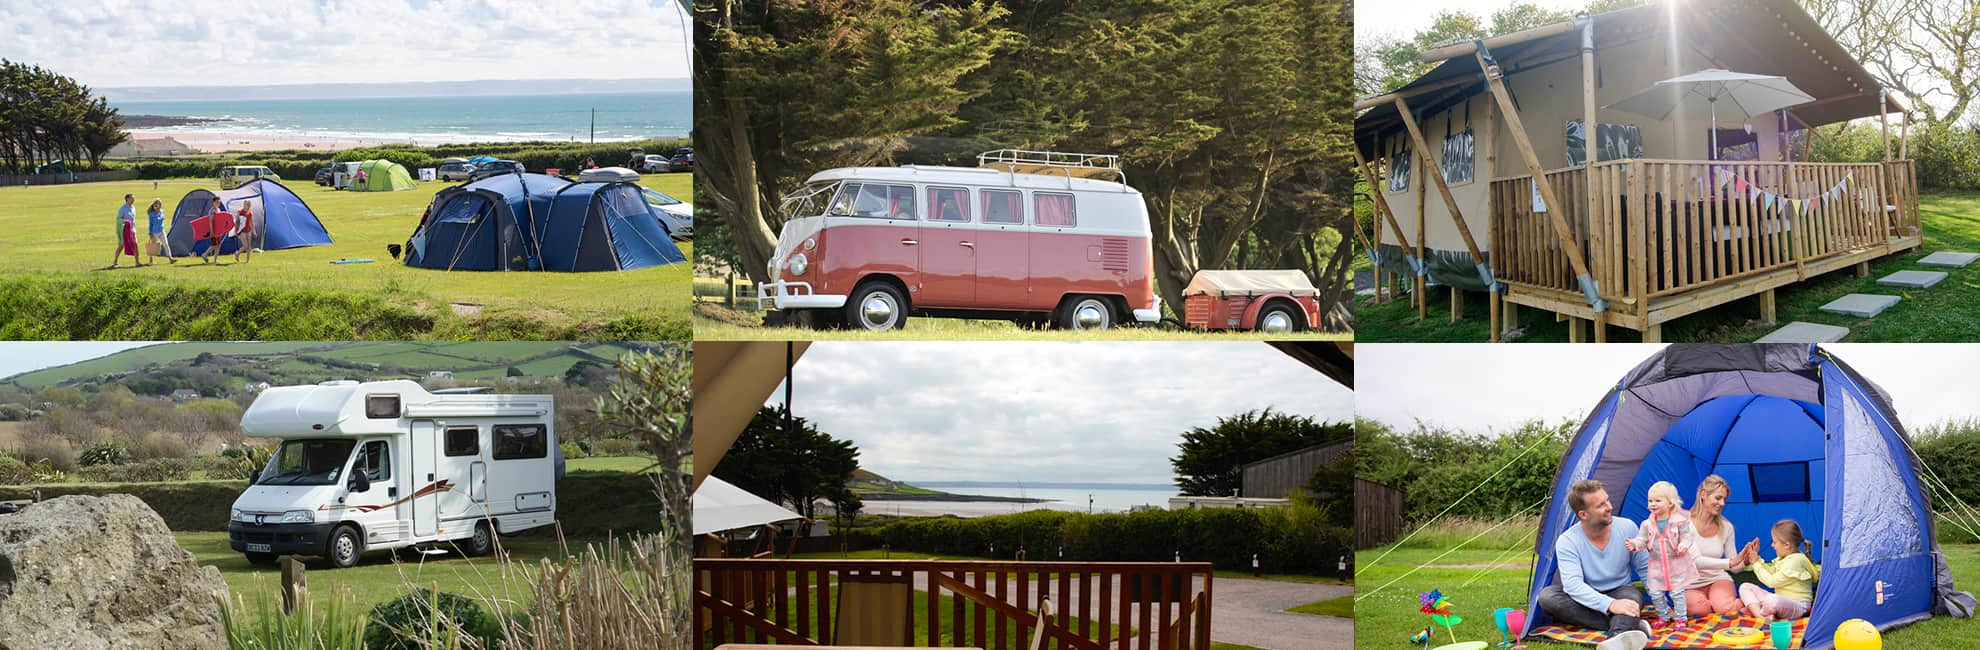 Touring, Camping and Glamping in Devon